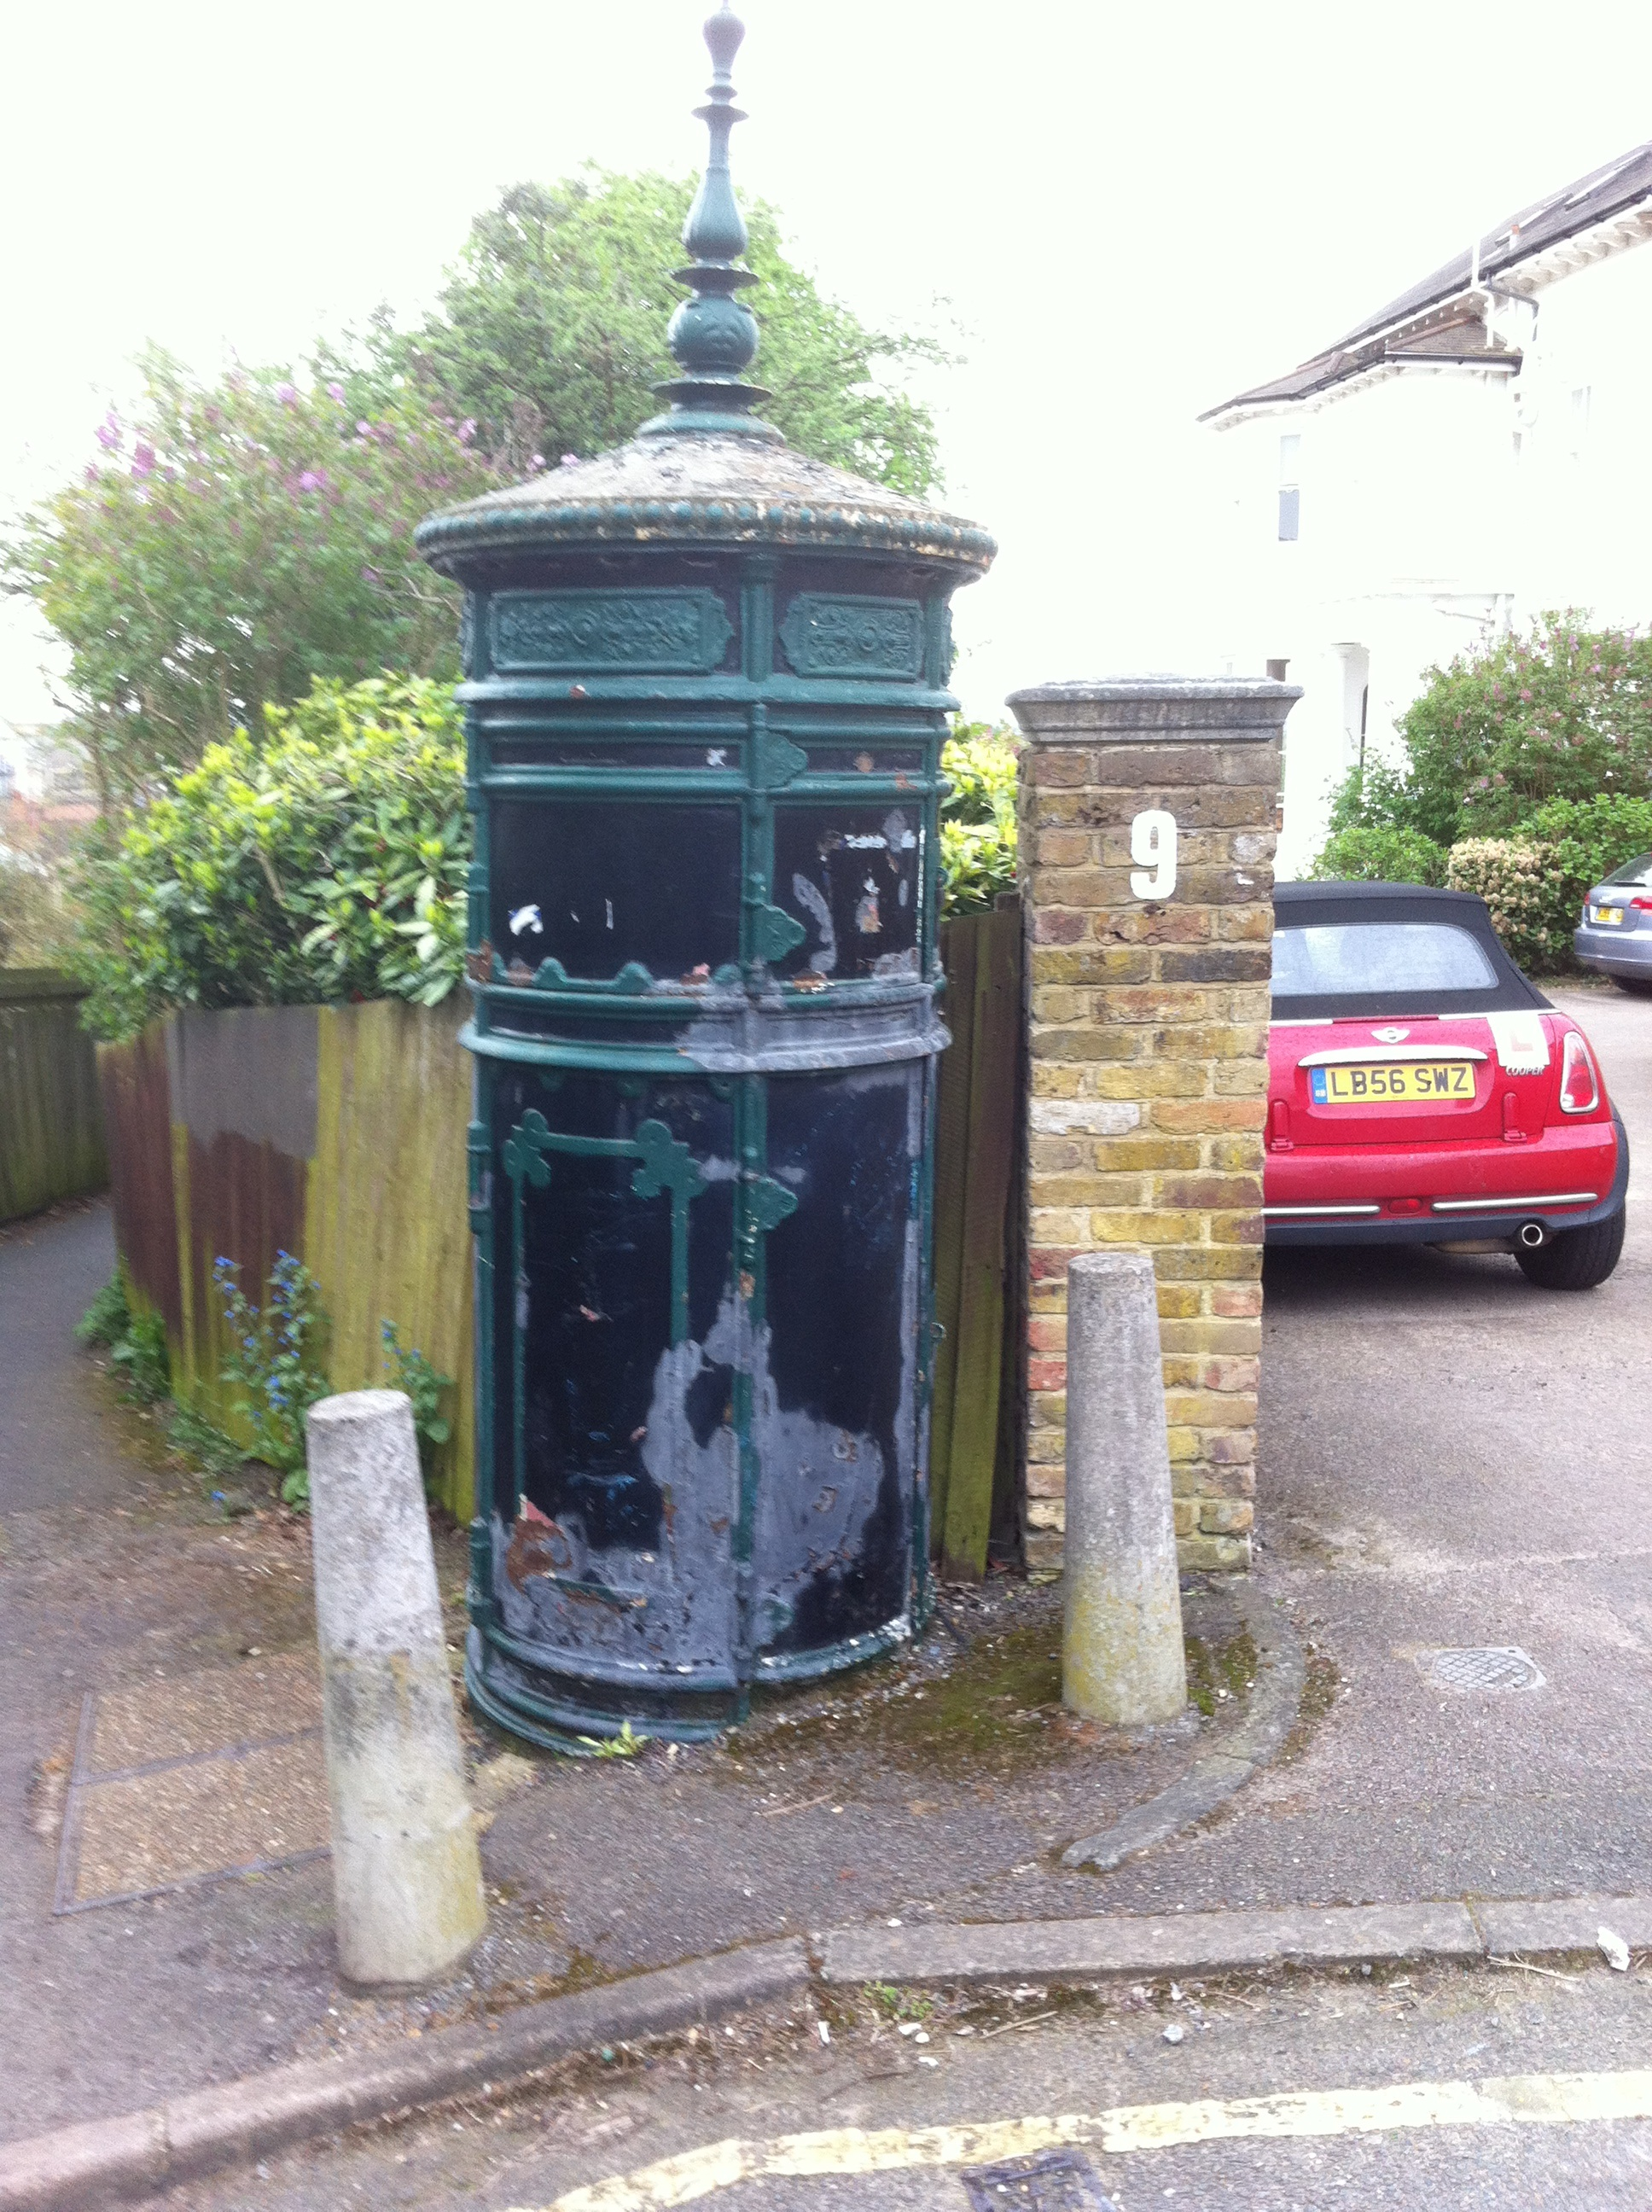 Transformer structure in Wimbledon SW19, at the end of Sunnyside. Nigel Headley